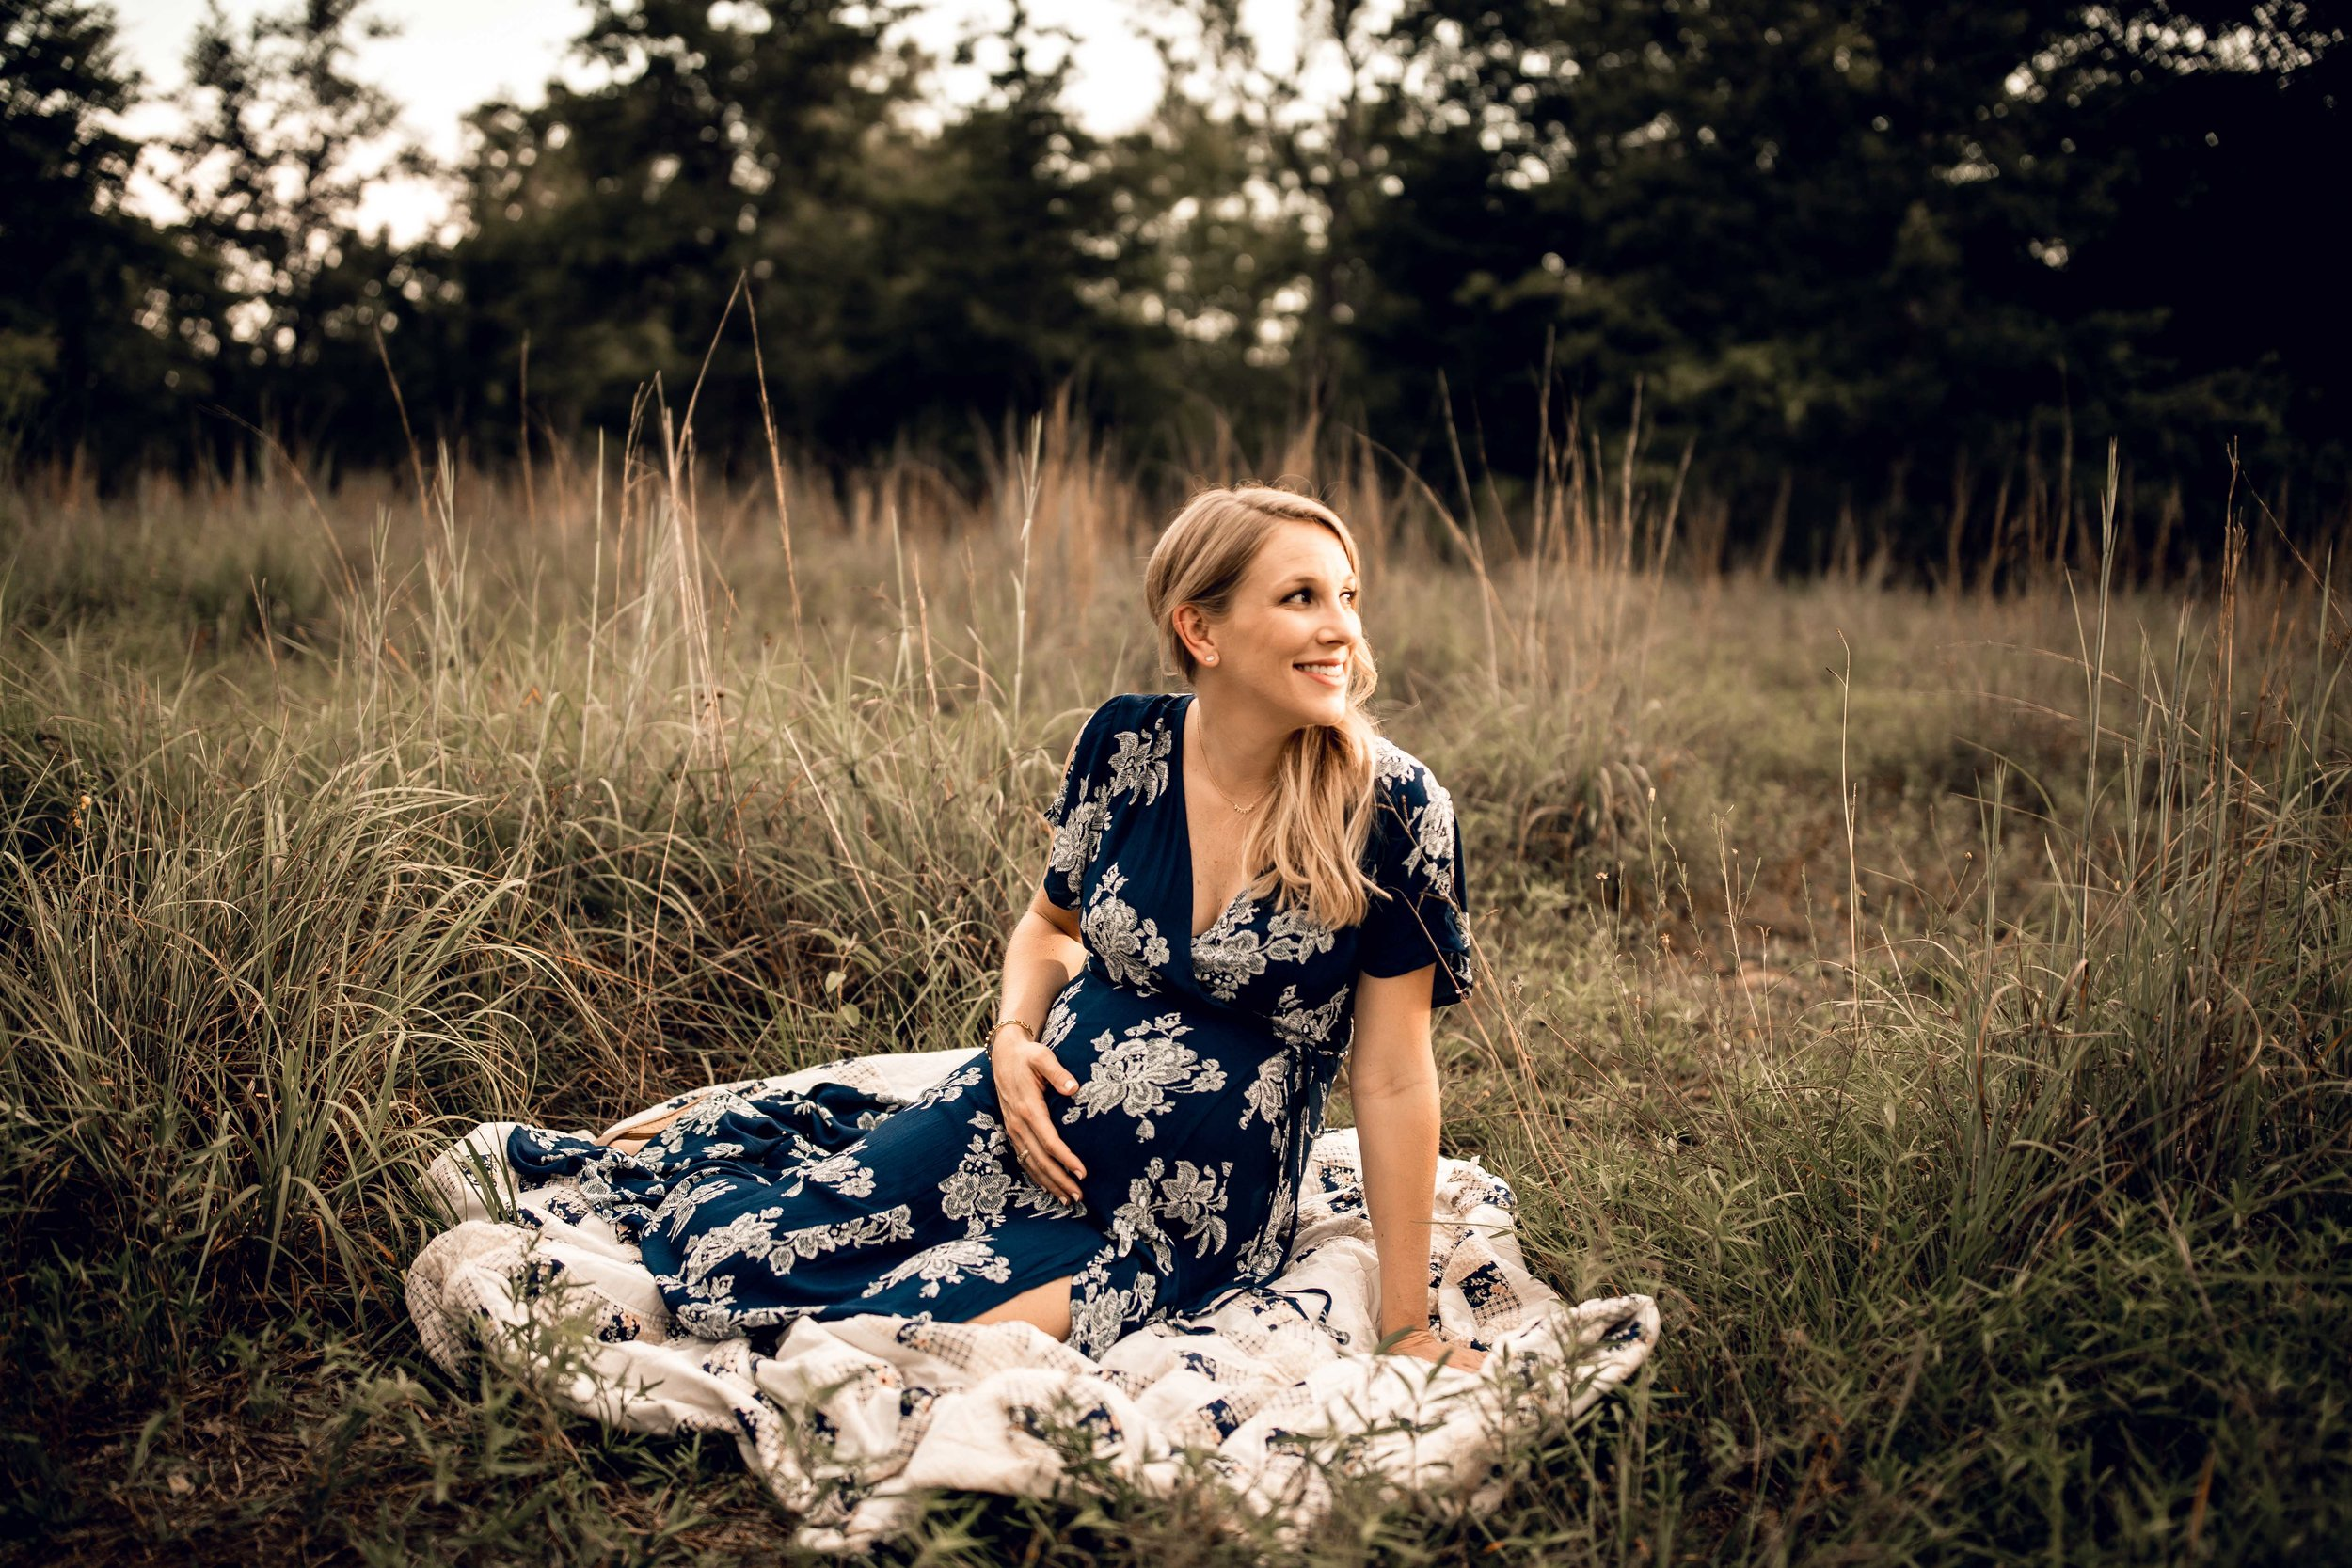 shelby-schiller-photography-maternity-navy-floral-dress-sitting-on-quilt-in-field.jpg